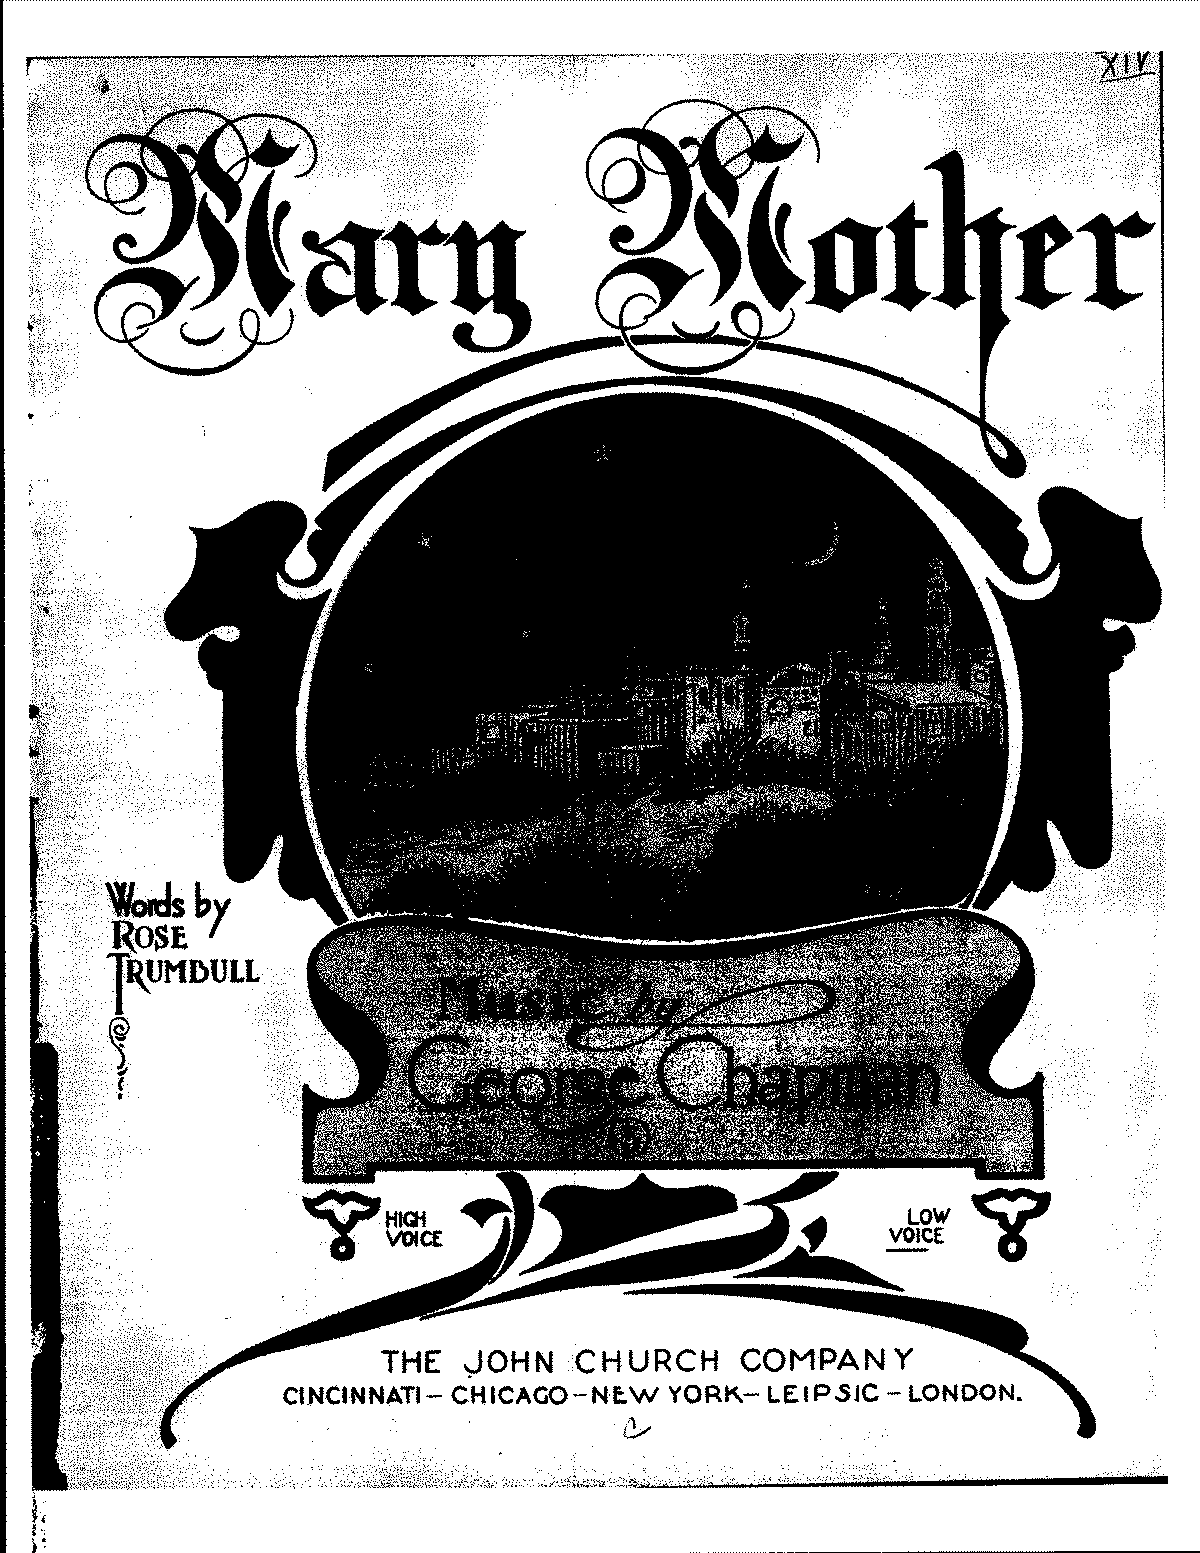 PMLP226921-sibley.1802.1622.Chapman Mary Mother cropped.pdf